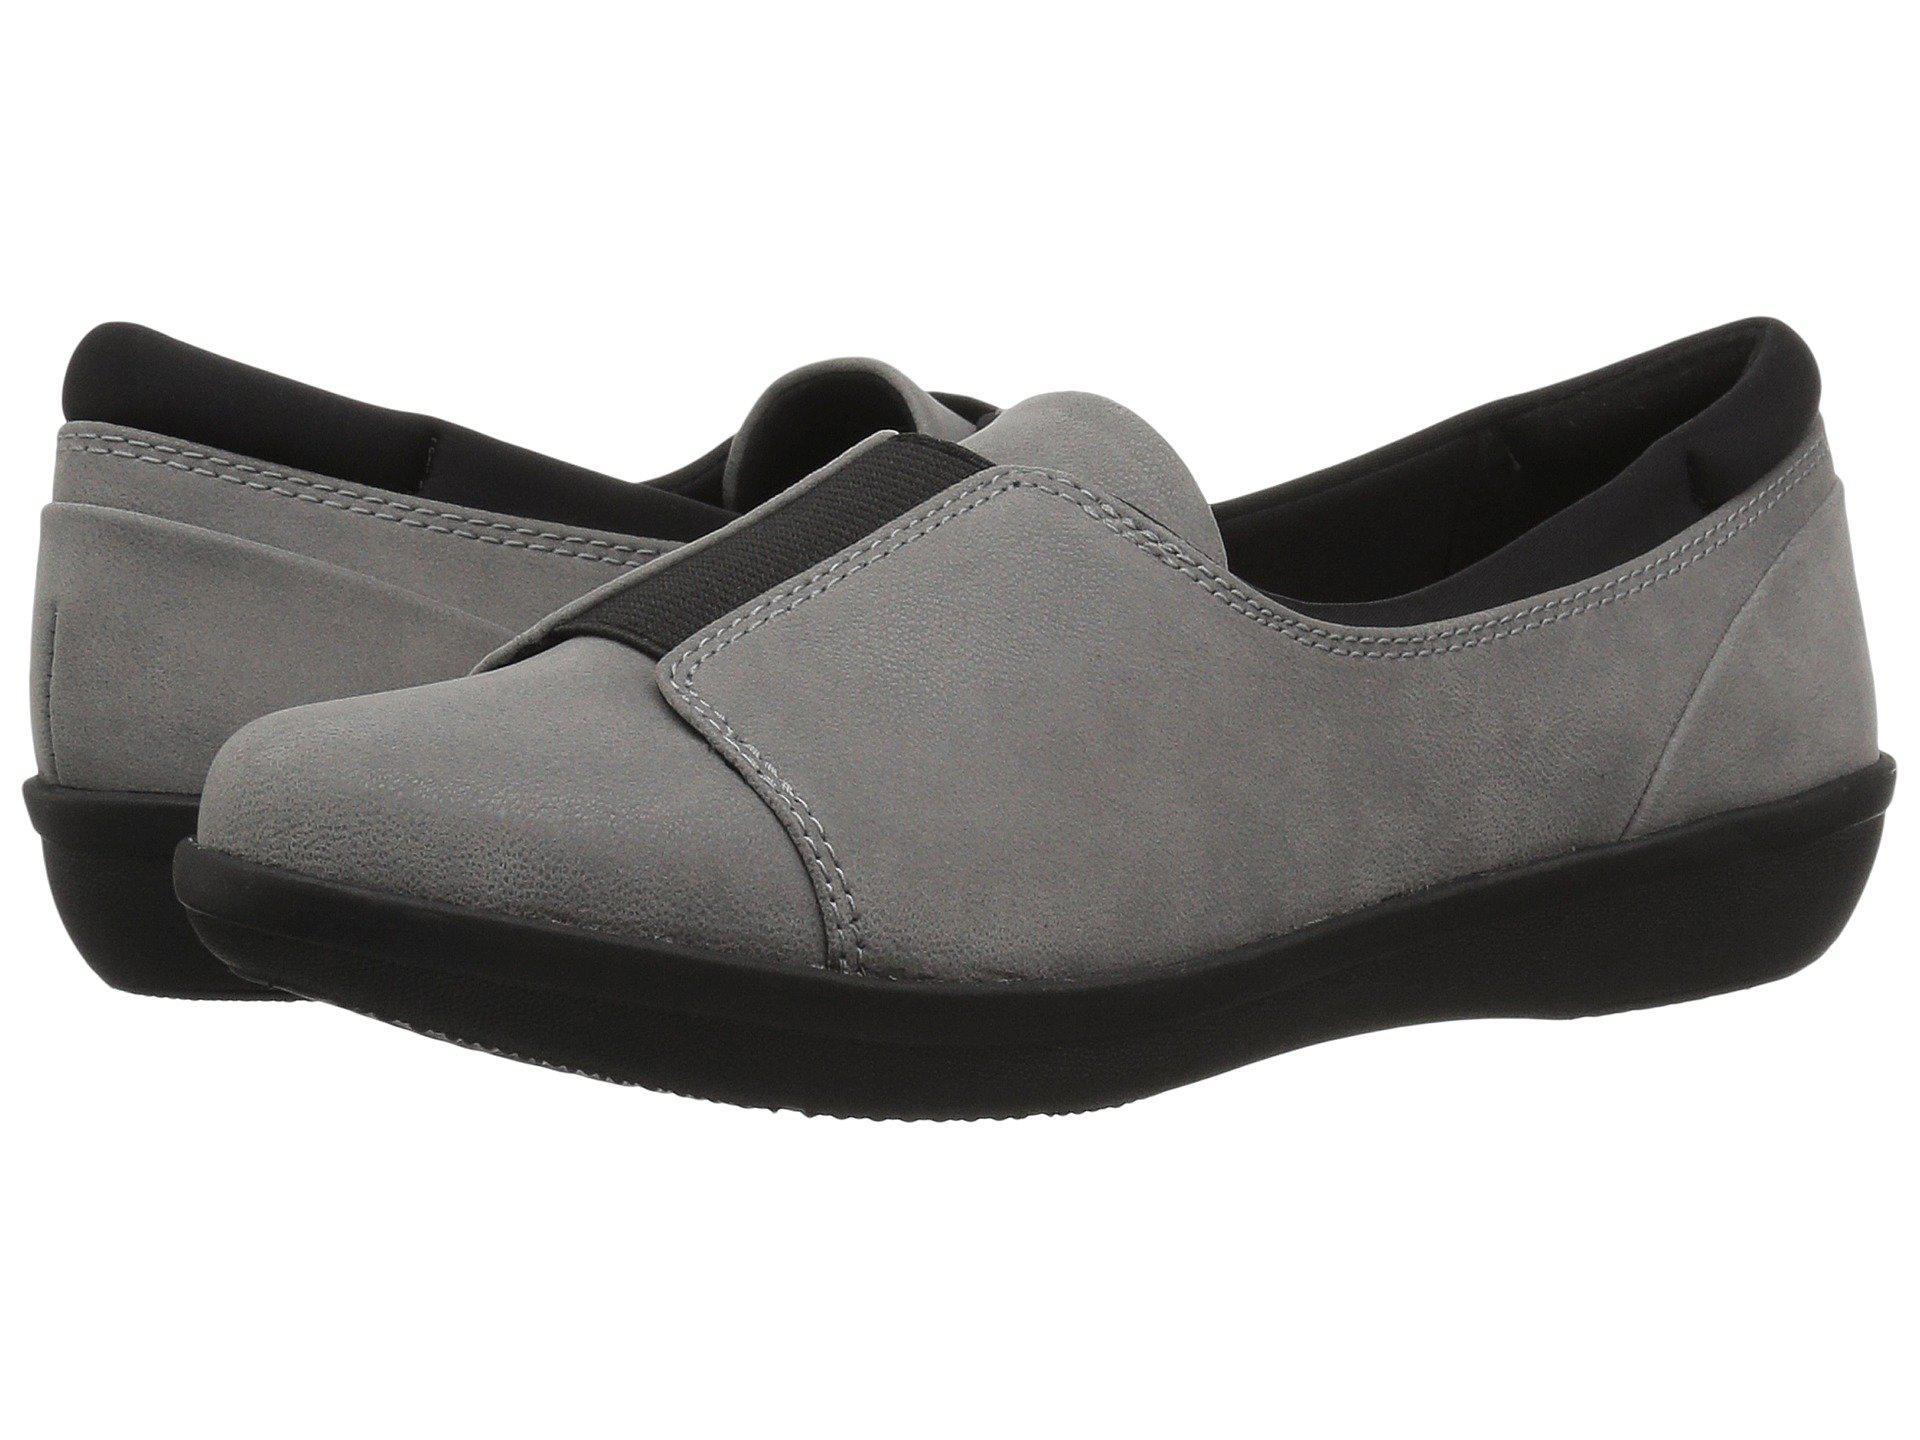 e990291e9bad Lyst clarks ayla band in gray save jpg 1920x1440 Clarks band